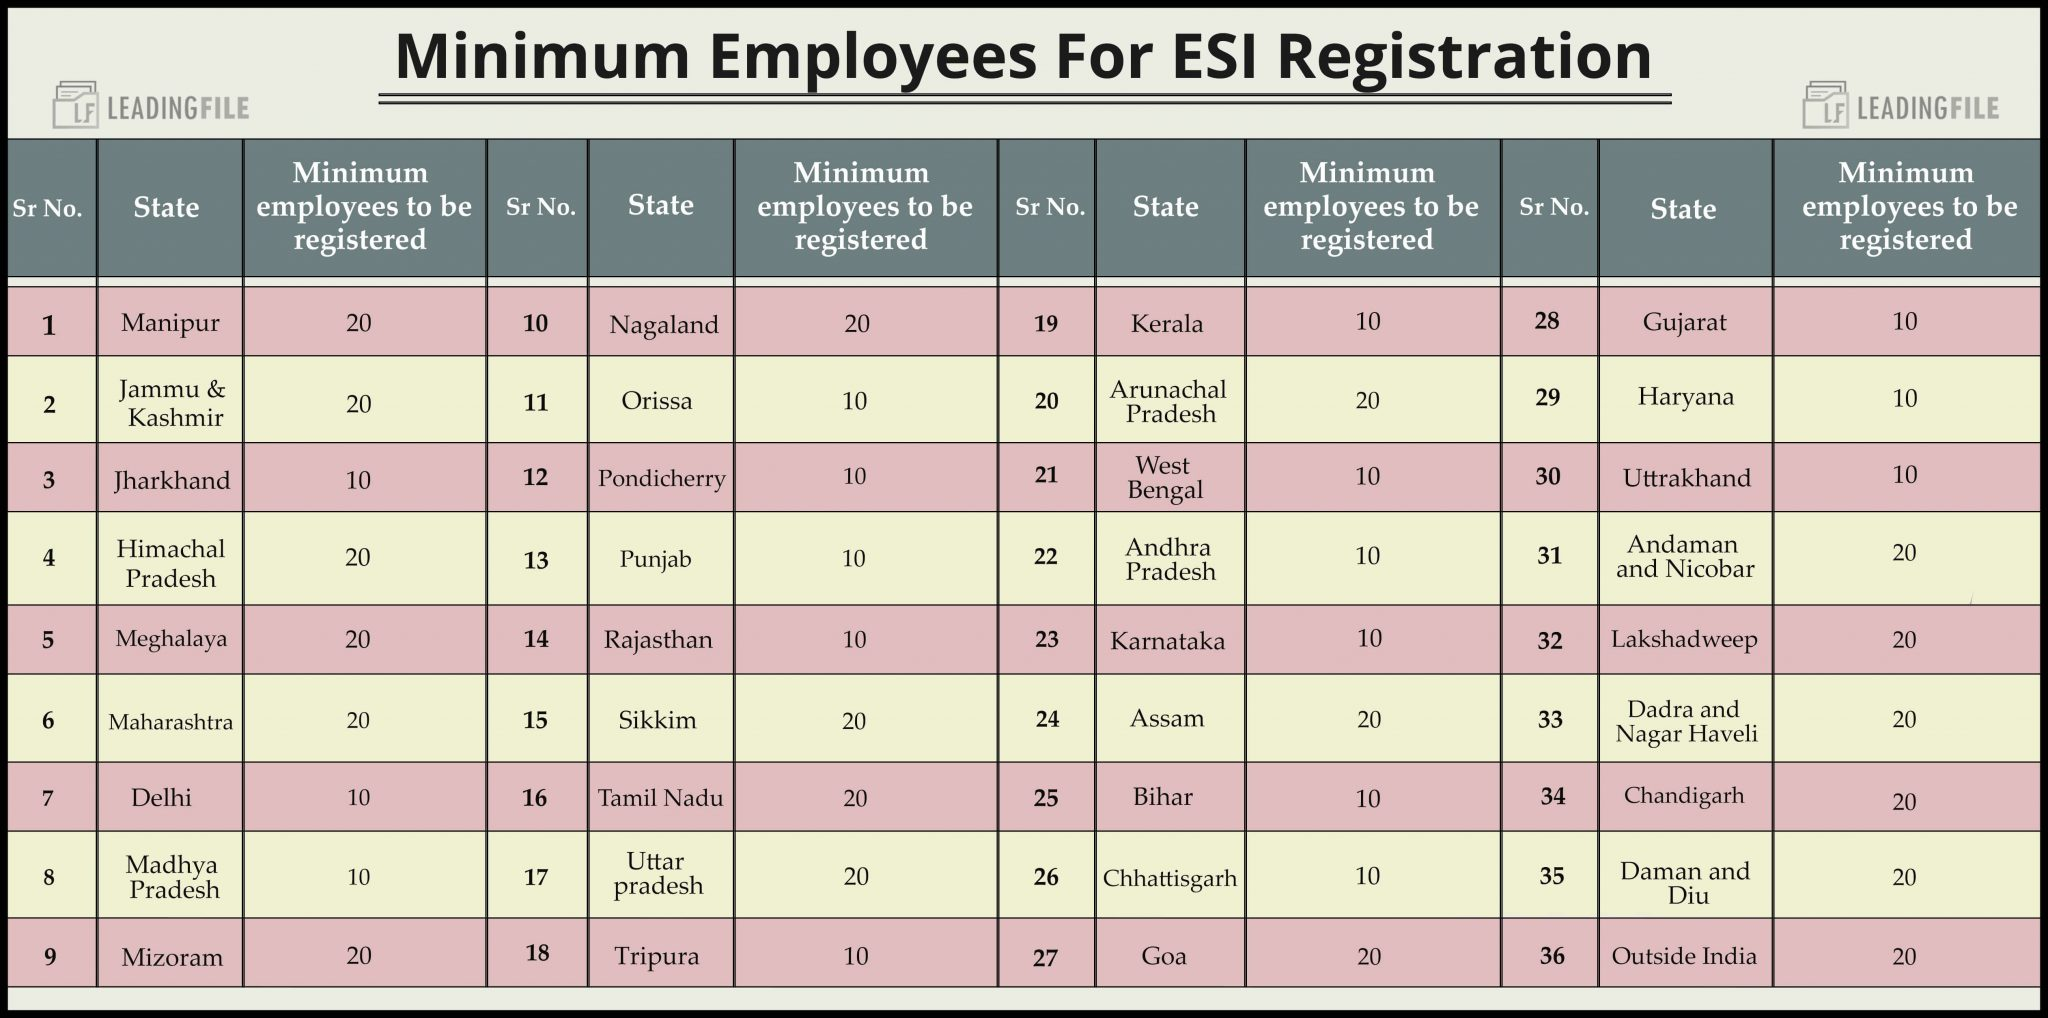 Minimum Employees For ESI Registration